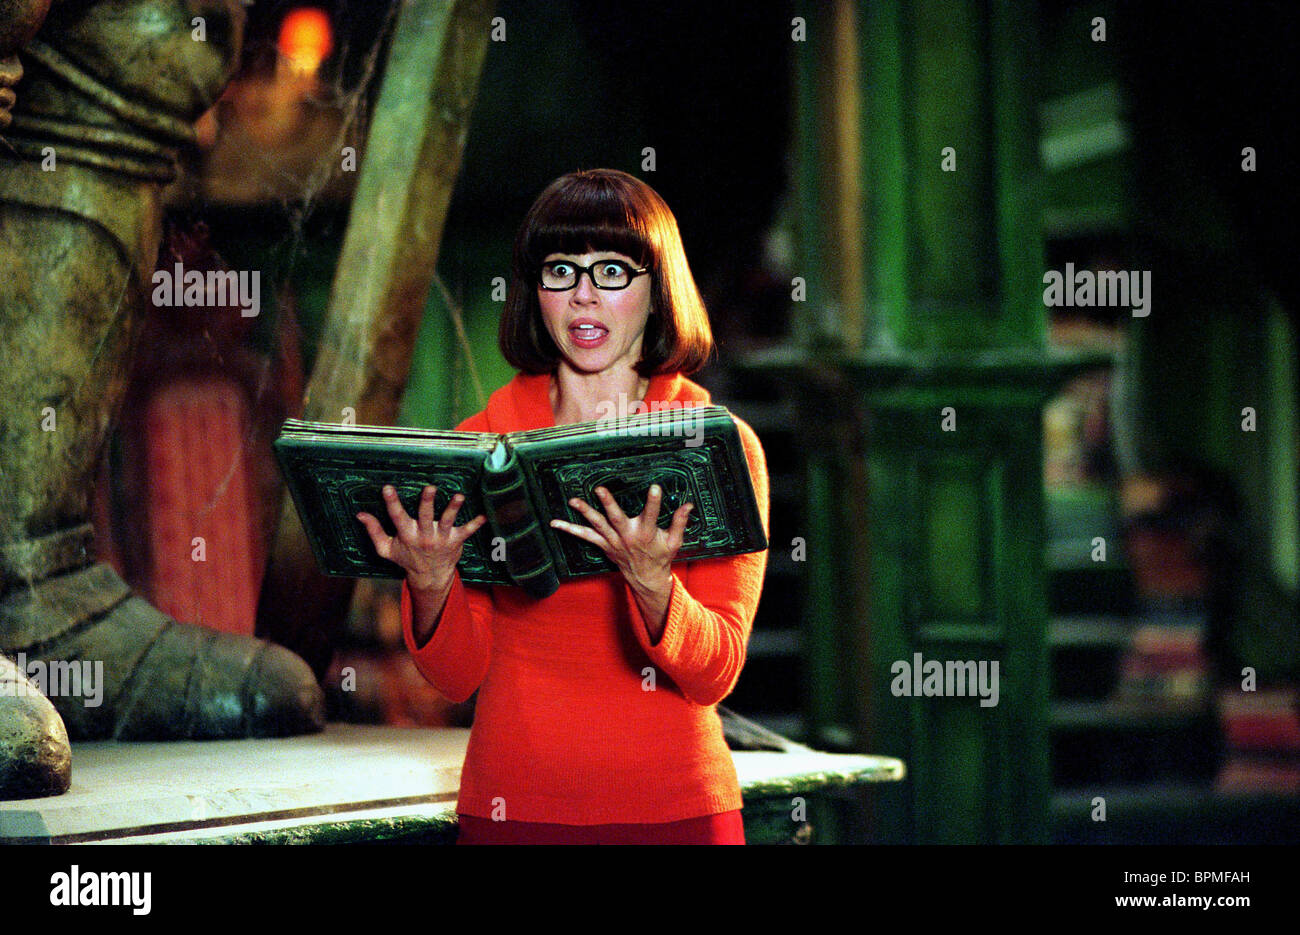 Linda Cardellini Scooby Doo 2 Monsters Unleashed 2004 Stock Photo Alamy